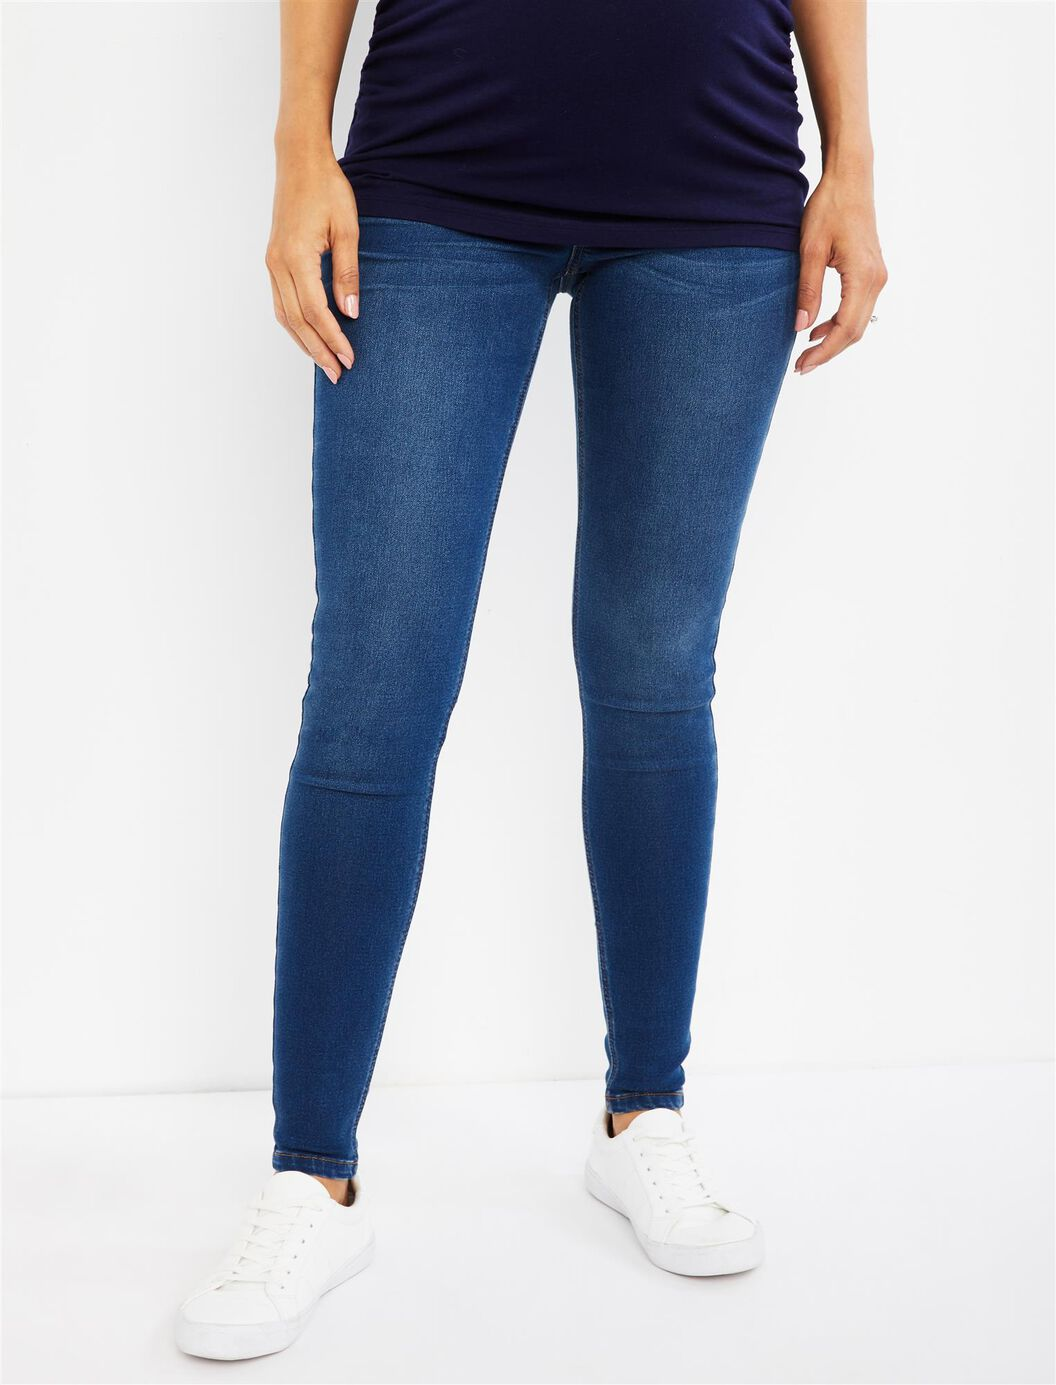 Secret Fit Belly French Terry Skinny Maternity Jeans at Motherhood Maternity in Victor, NY | Tuggl